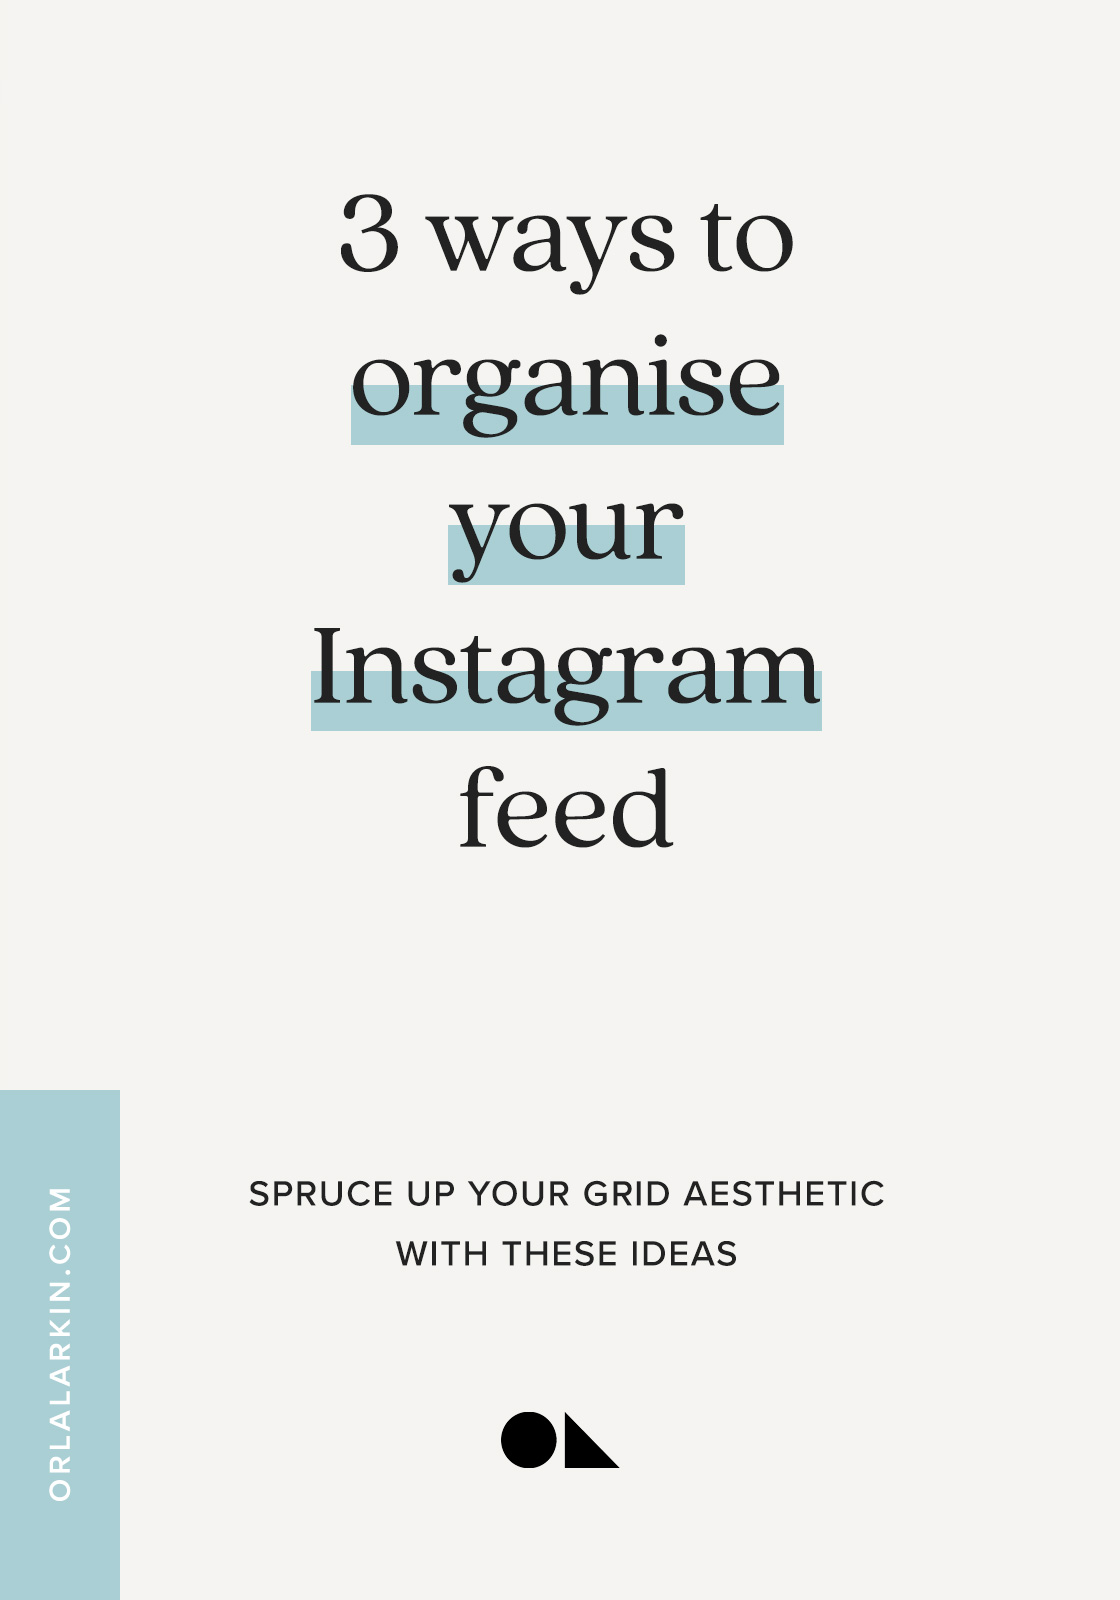 3 ways to organise your Instagram feed